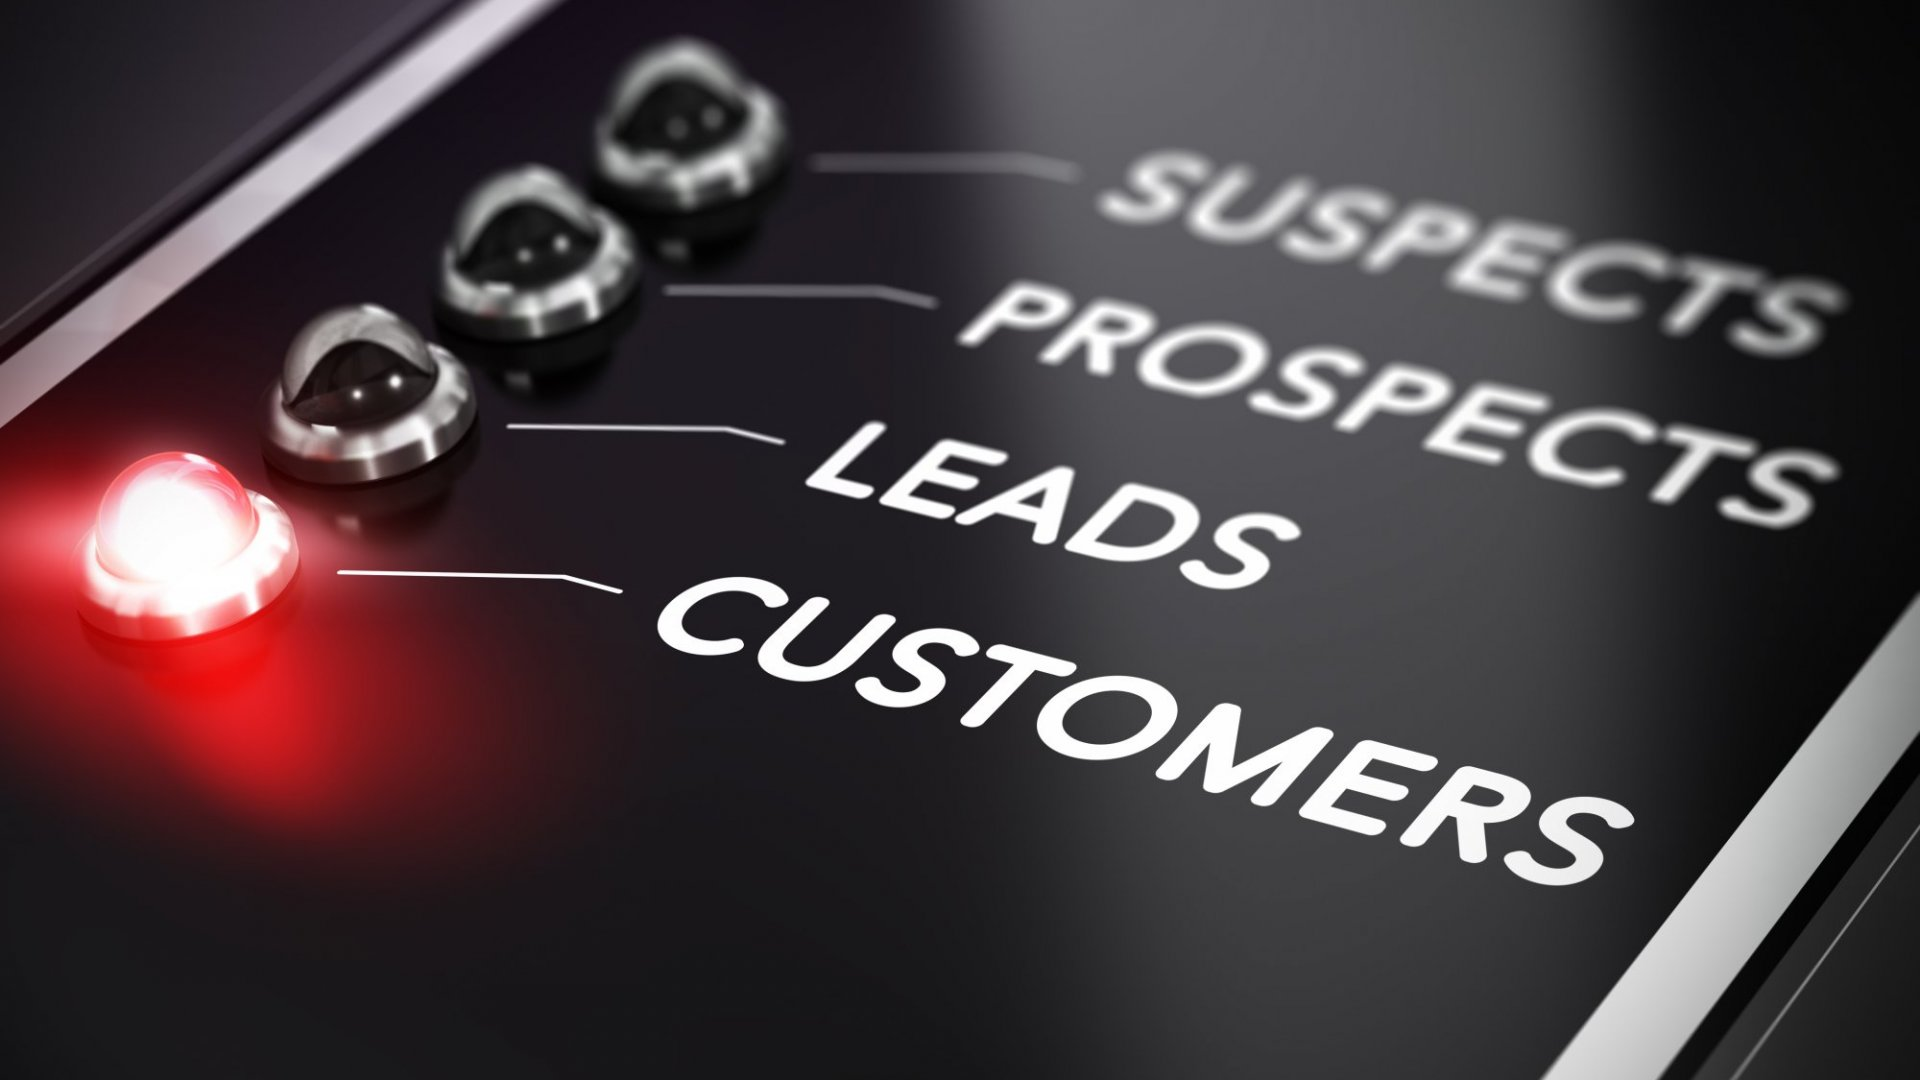 4 Keys to Generating More Sales Leads and Crushing Goals